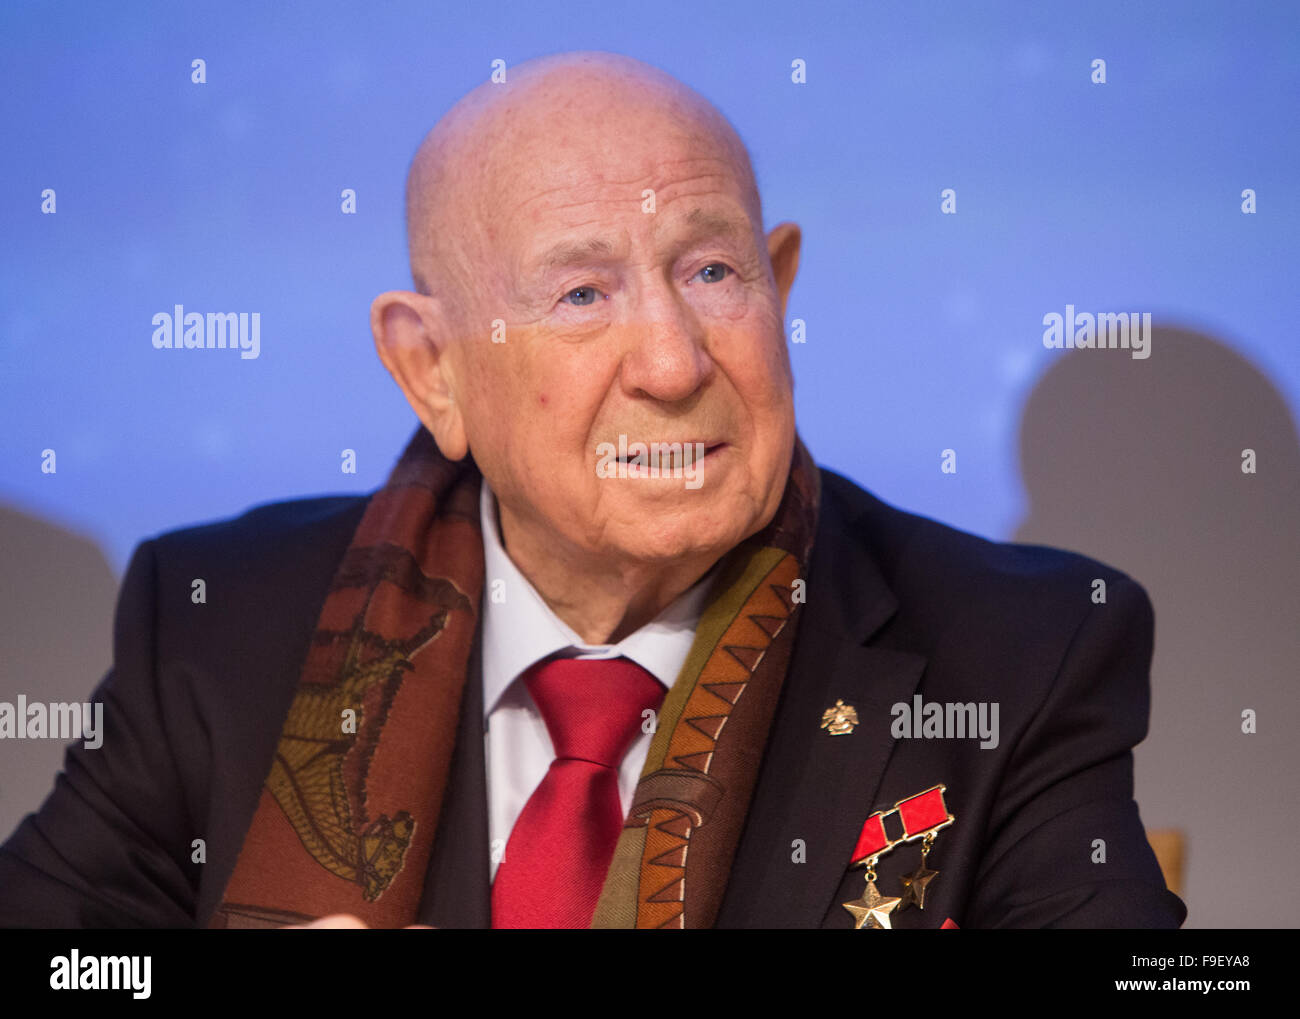 Alexei Leonov,the first man to walk in space, attends the announcement of the Stephen Hawking medal for Science - Stock Image